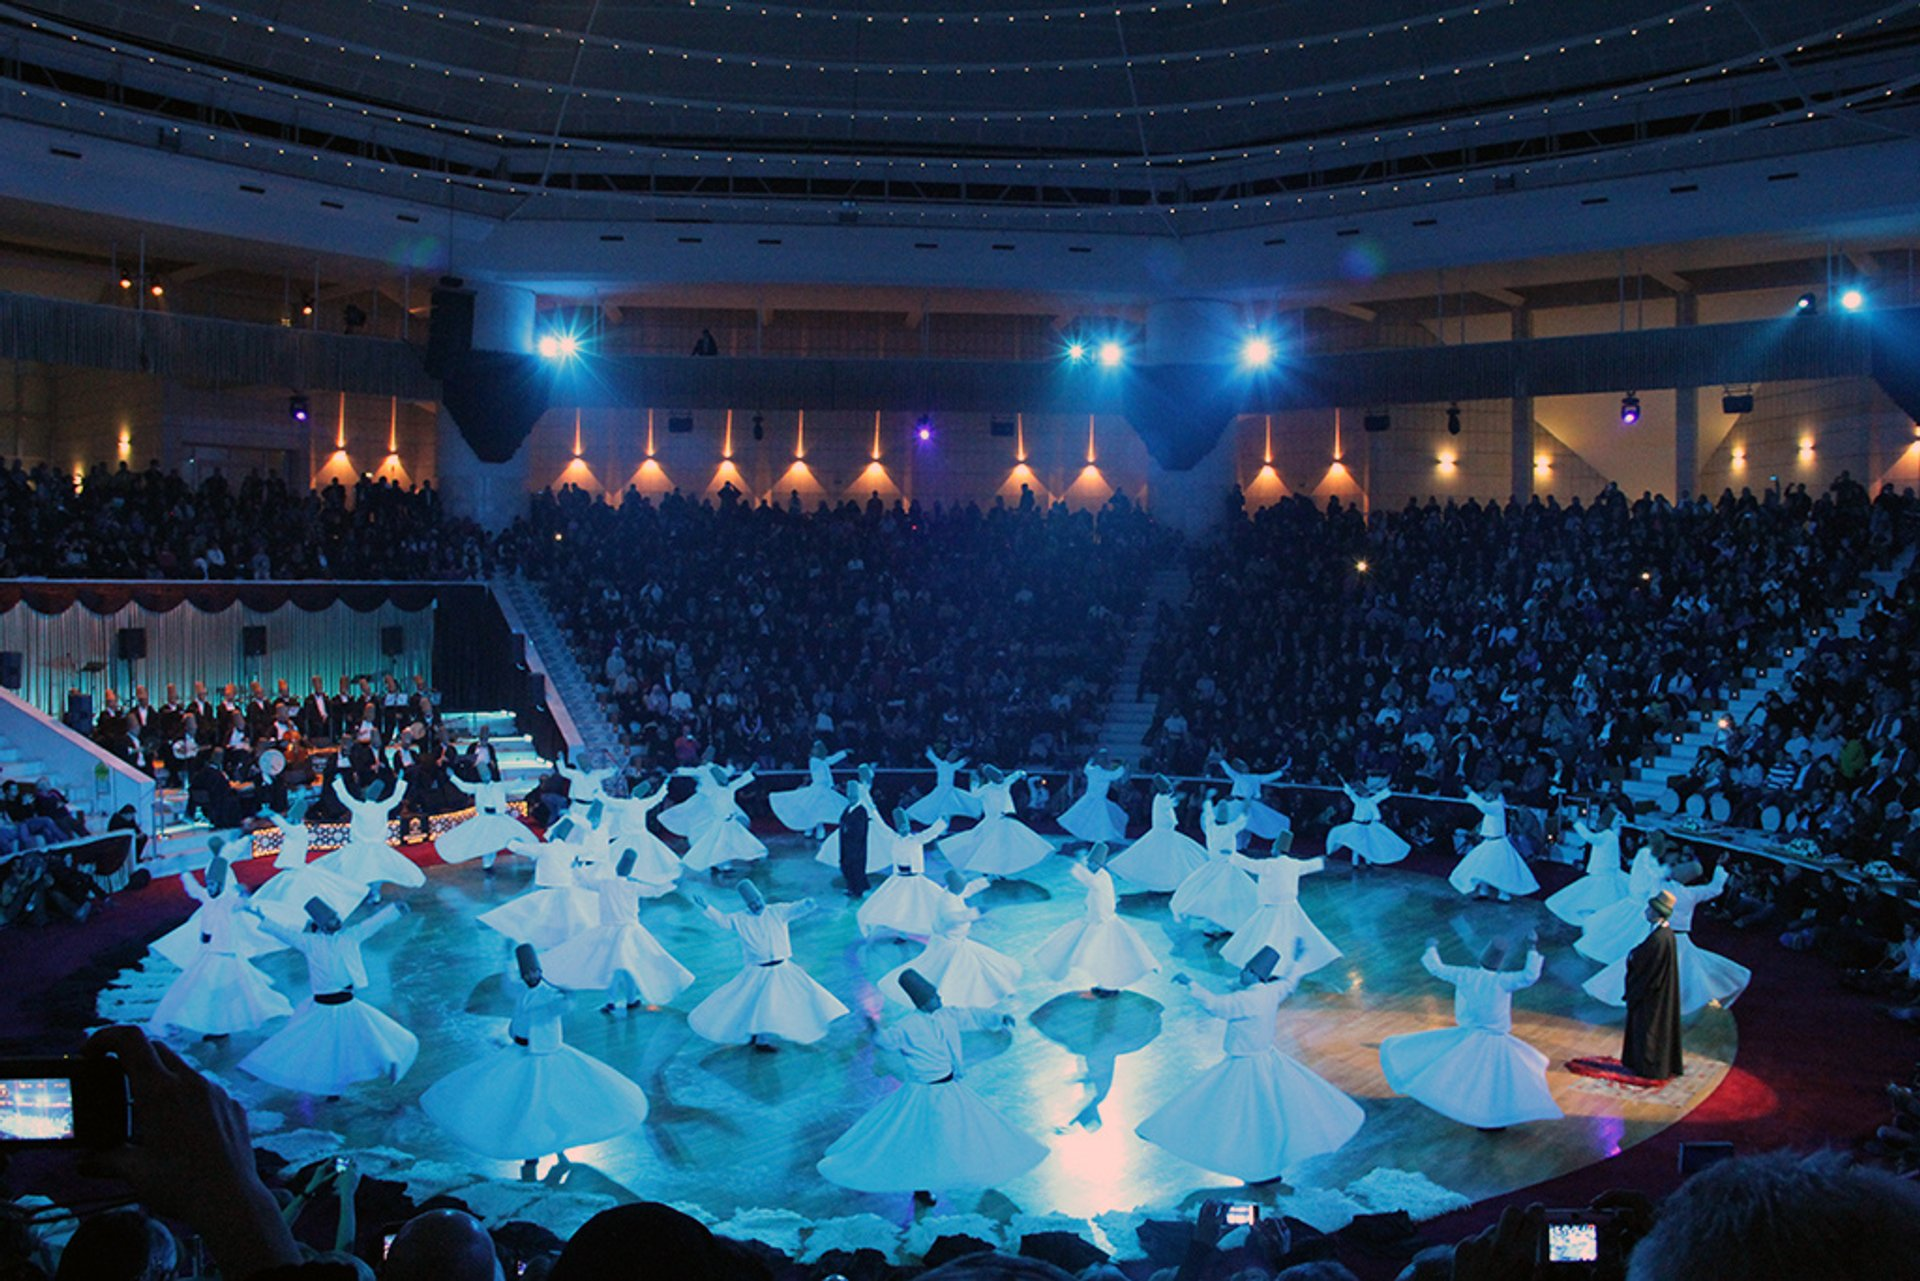 Whirling Dervishes at Mevlana Festival in Turkey 2020 - Best Time